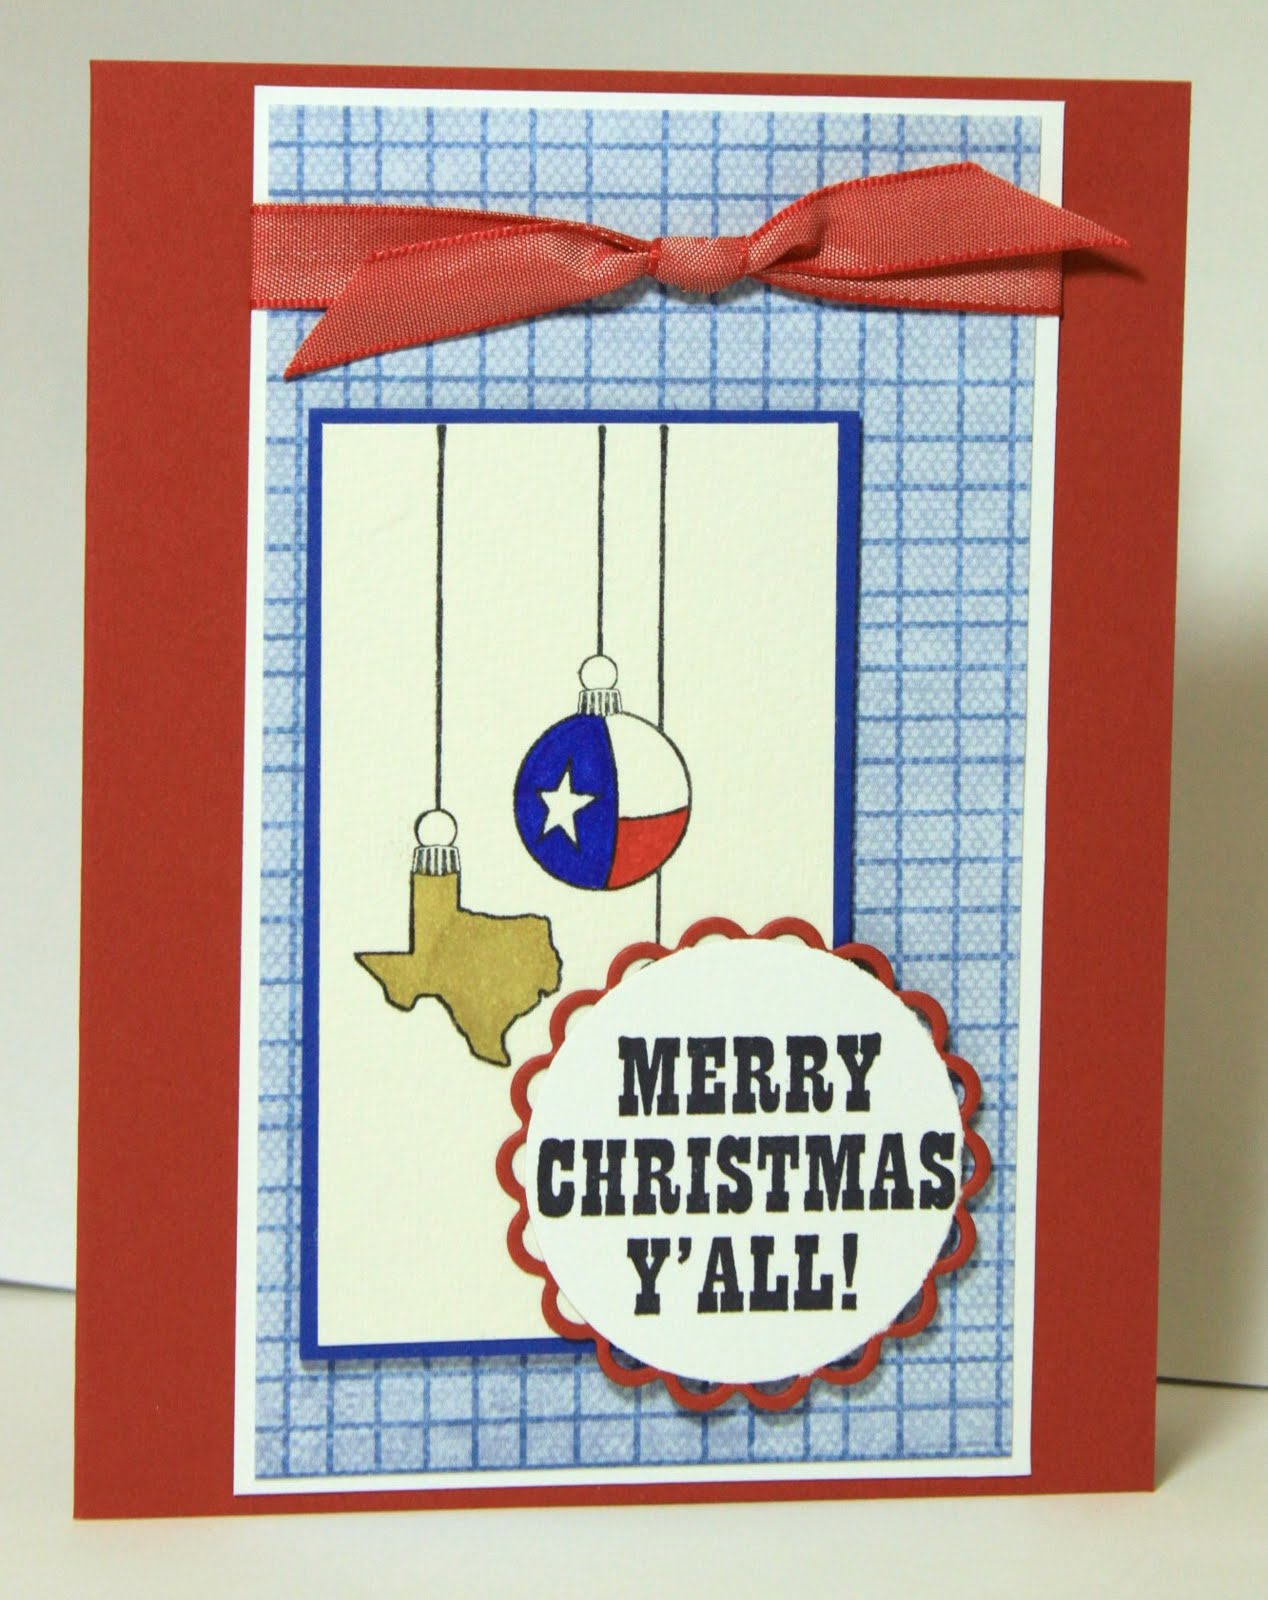 merry christmas yall patriotic texas ornaments cards